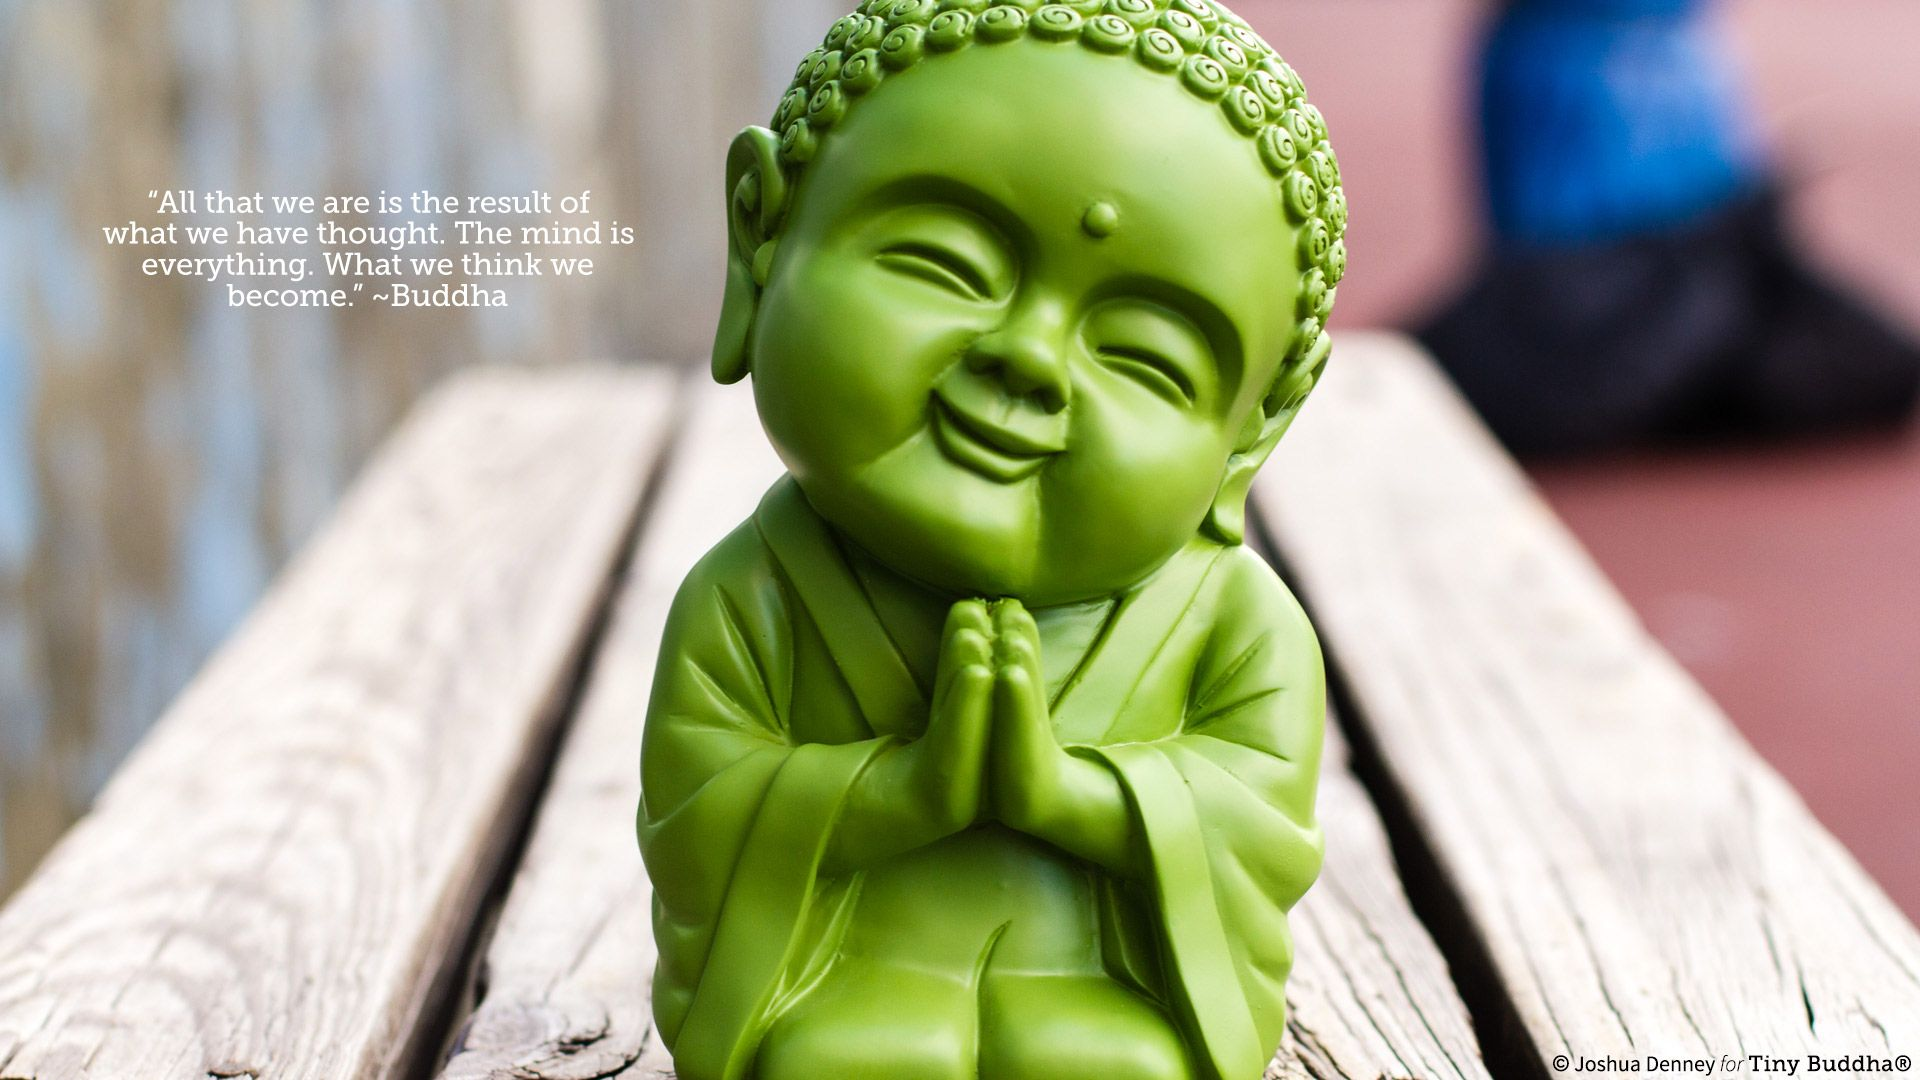 All That We Are We Think We Become Buddha 1920x1080 Need Iphone 6s Plus Wallpaper Background For Iphone6spl Laughing Buddha Buddha Baby Buddha